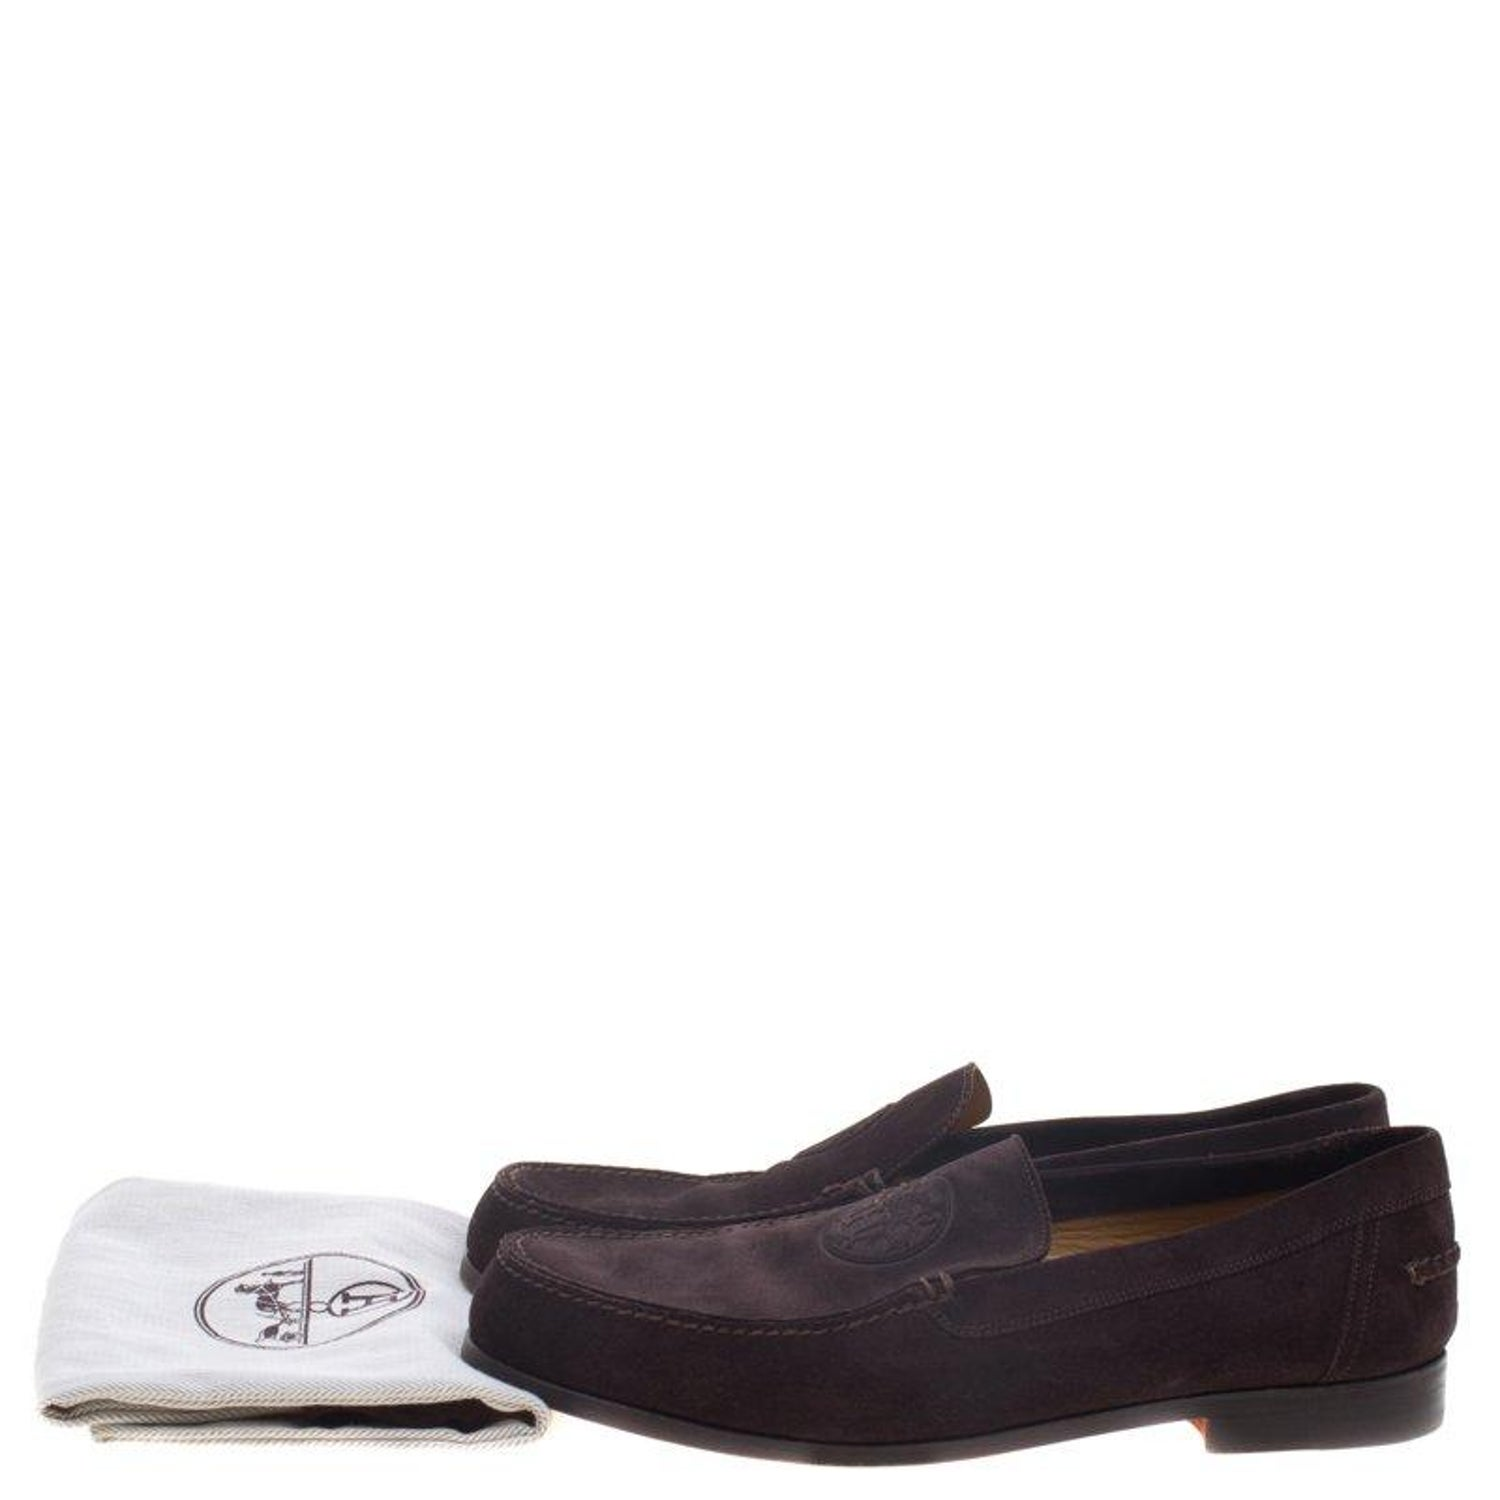 47947595c2b Hermes Chocolate Brown Suede Lucky Moccasins Size 43 For Sale at 1stdibs